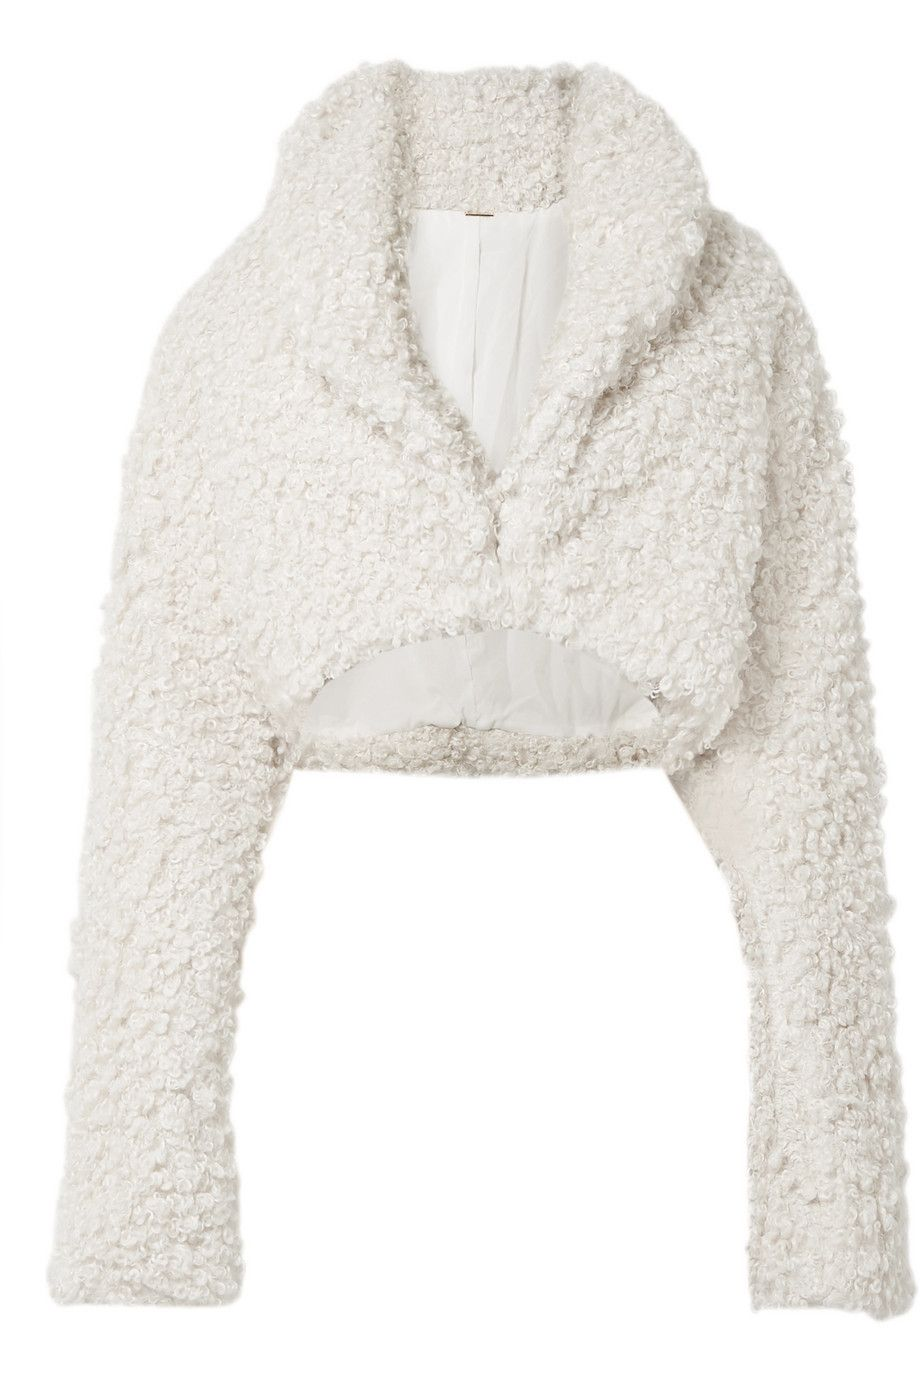 cult-gaia-evie-cropped-faux-shearling-jacket